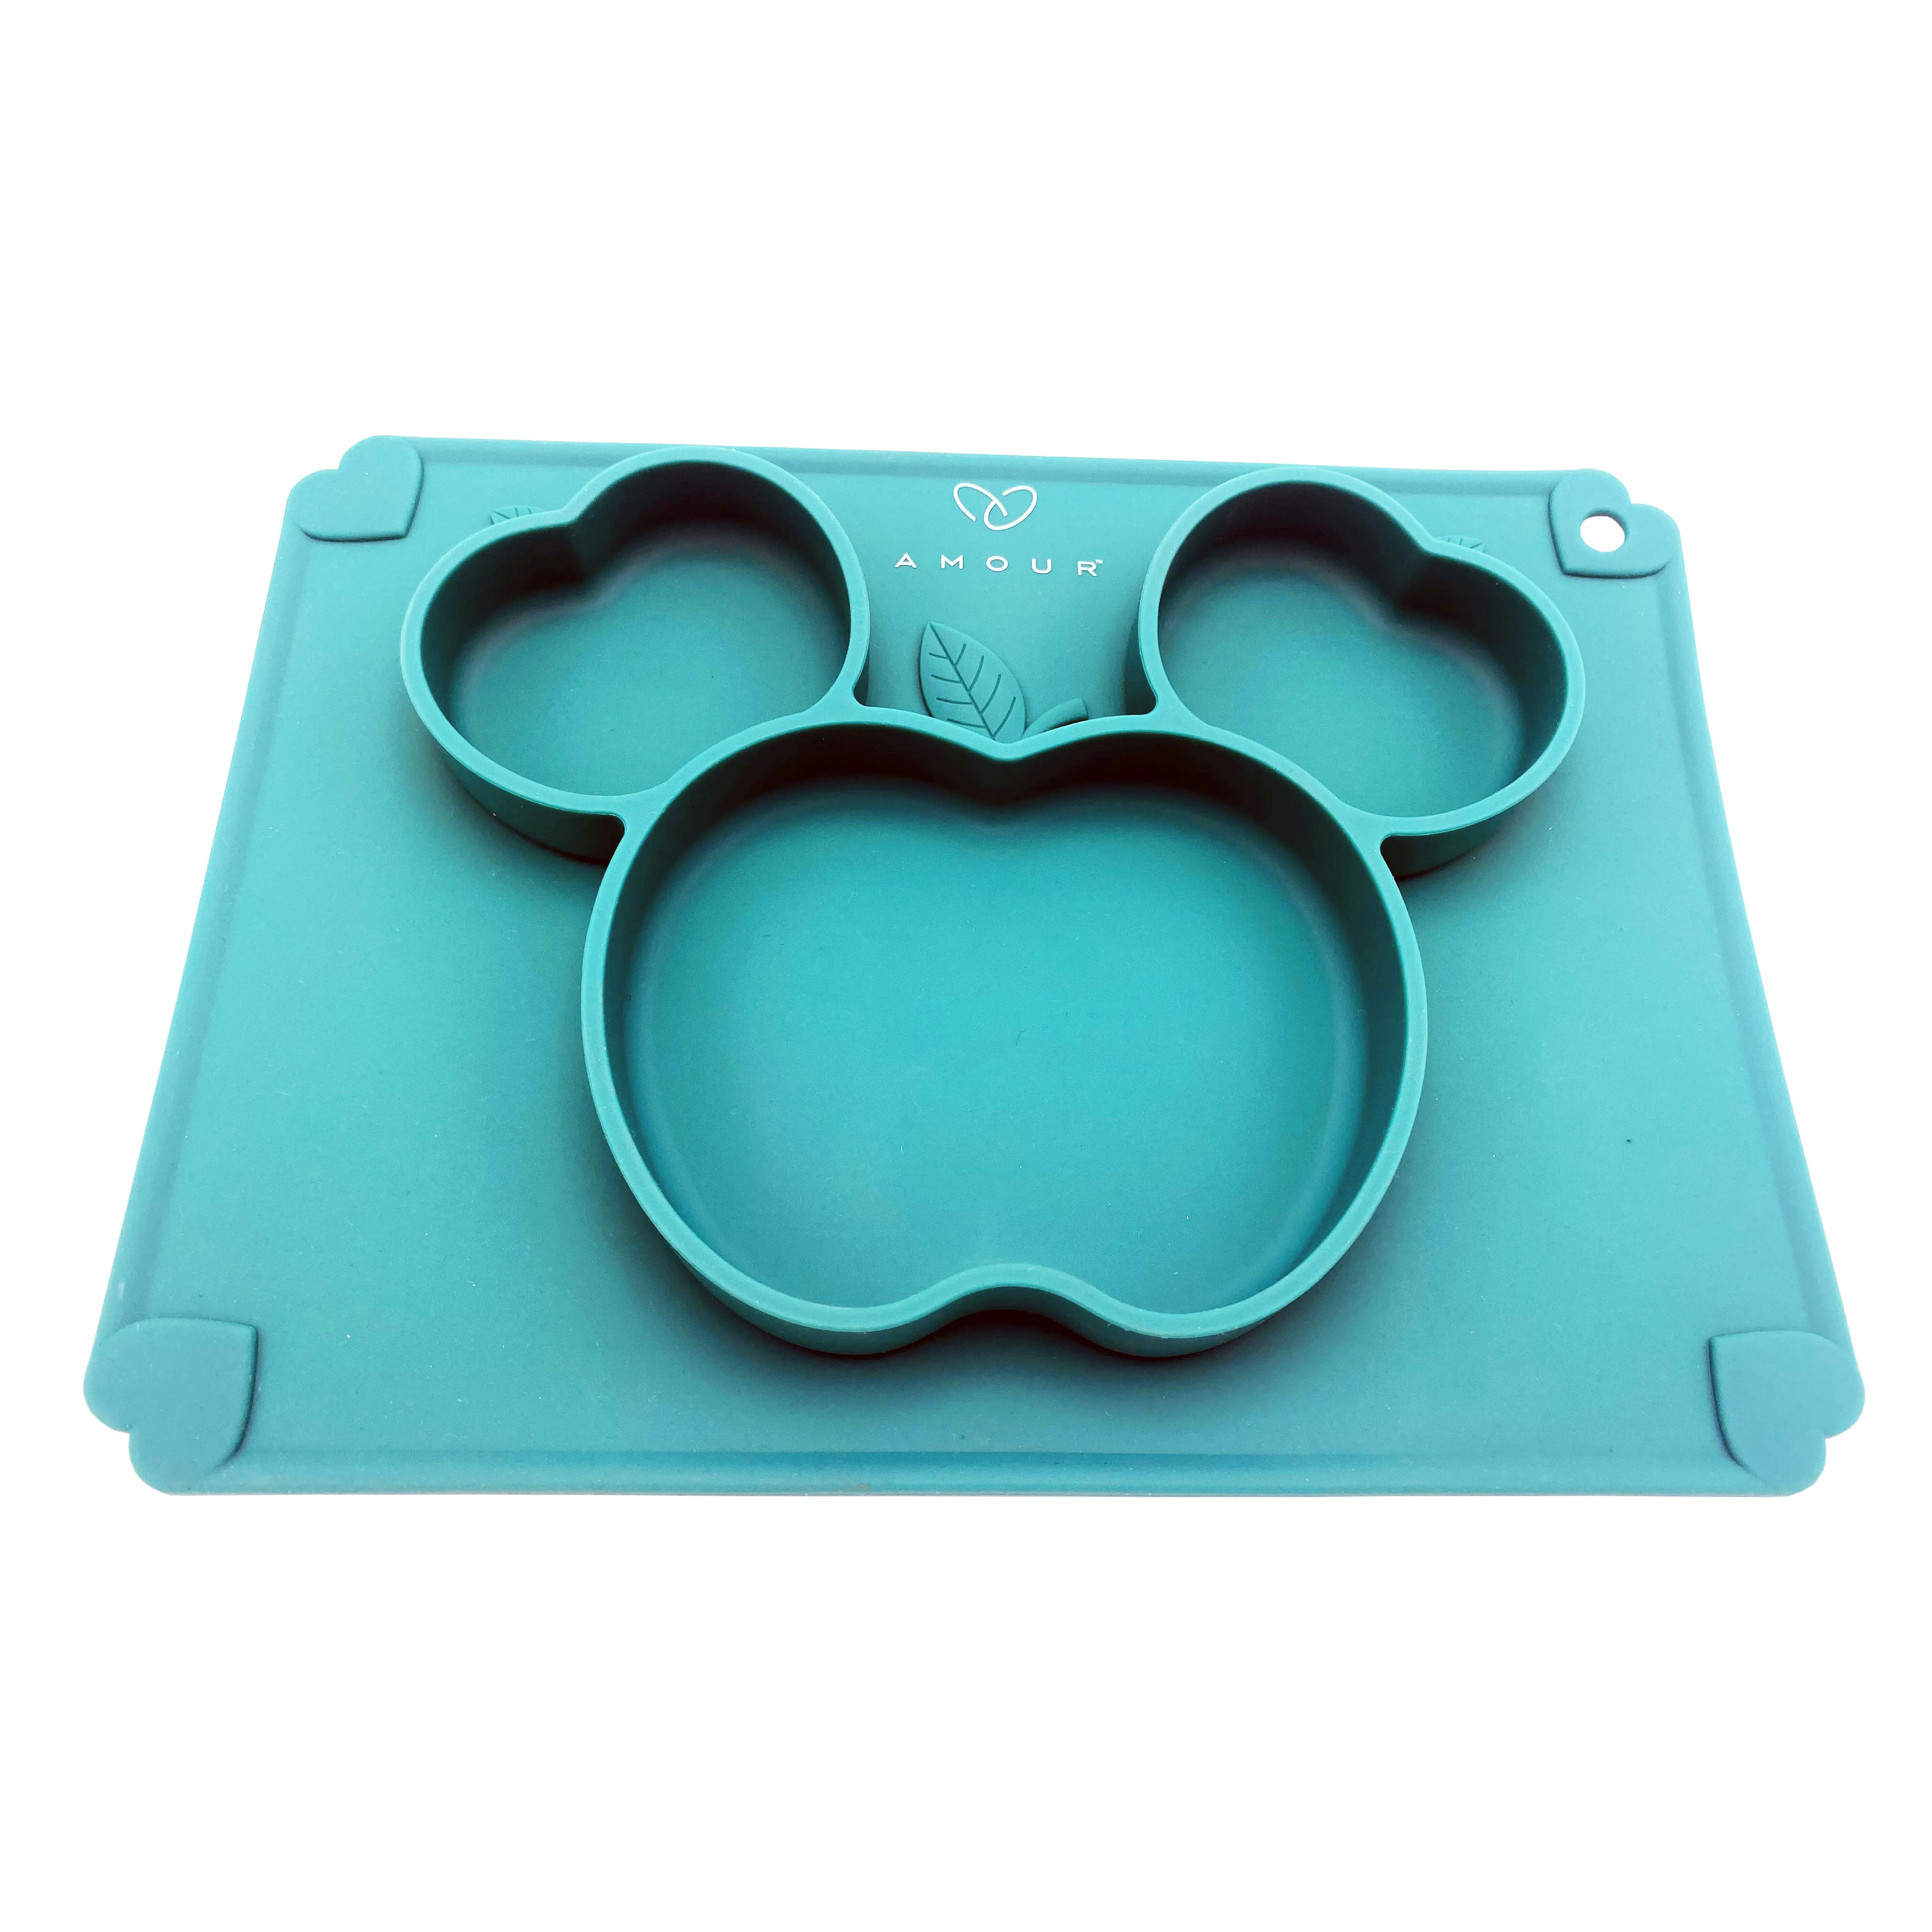 Amour   Amour Silicone Grip Self Feeding Dish, Suction Plate, Baby Toddler Plate (Green)